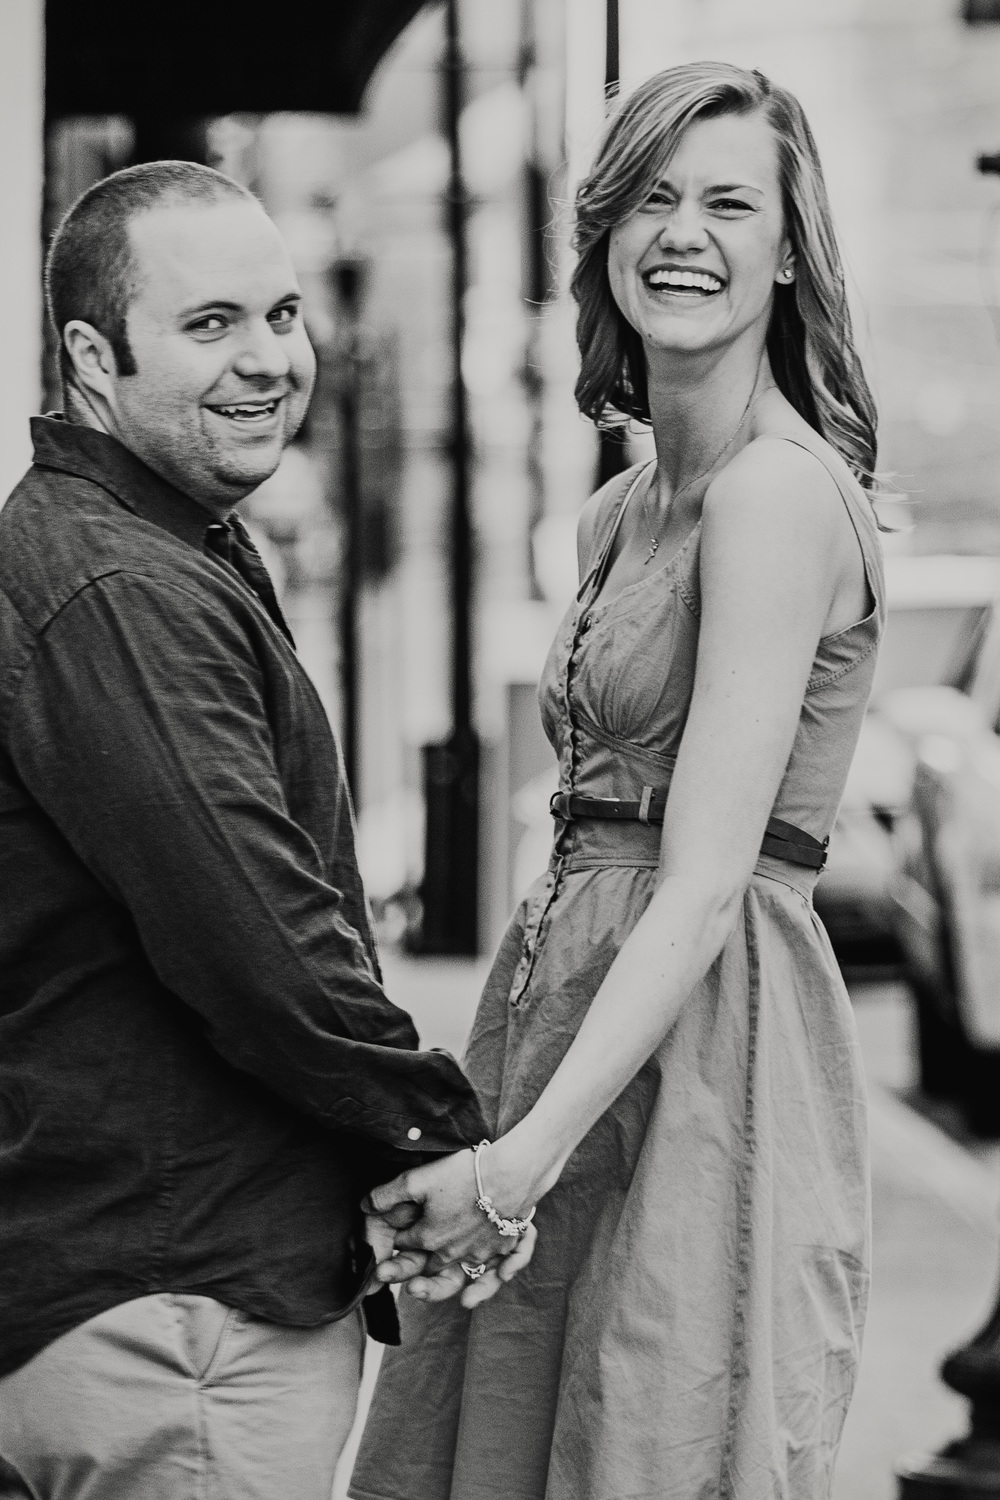 bedford_home_engagement_session_lifestyle_small_town_lynchburg_va009.jpg